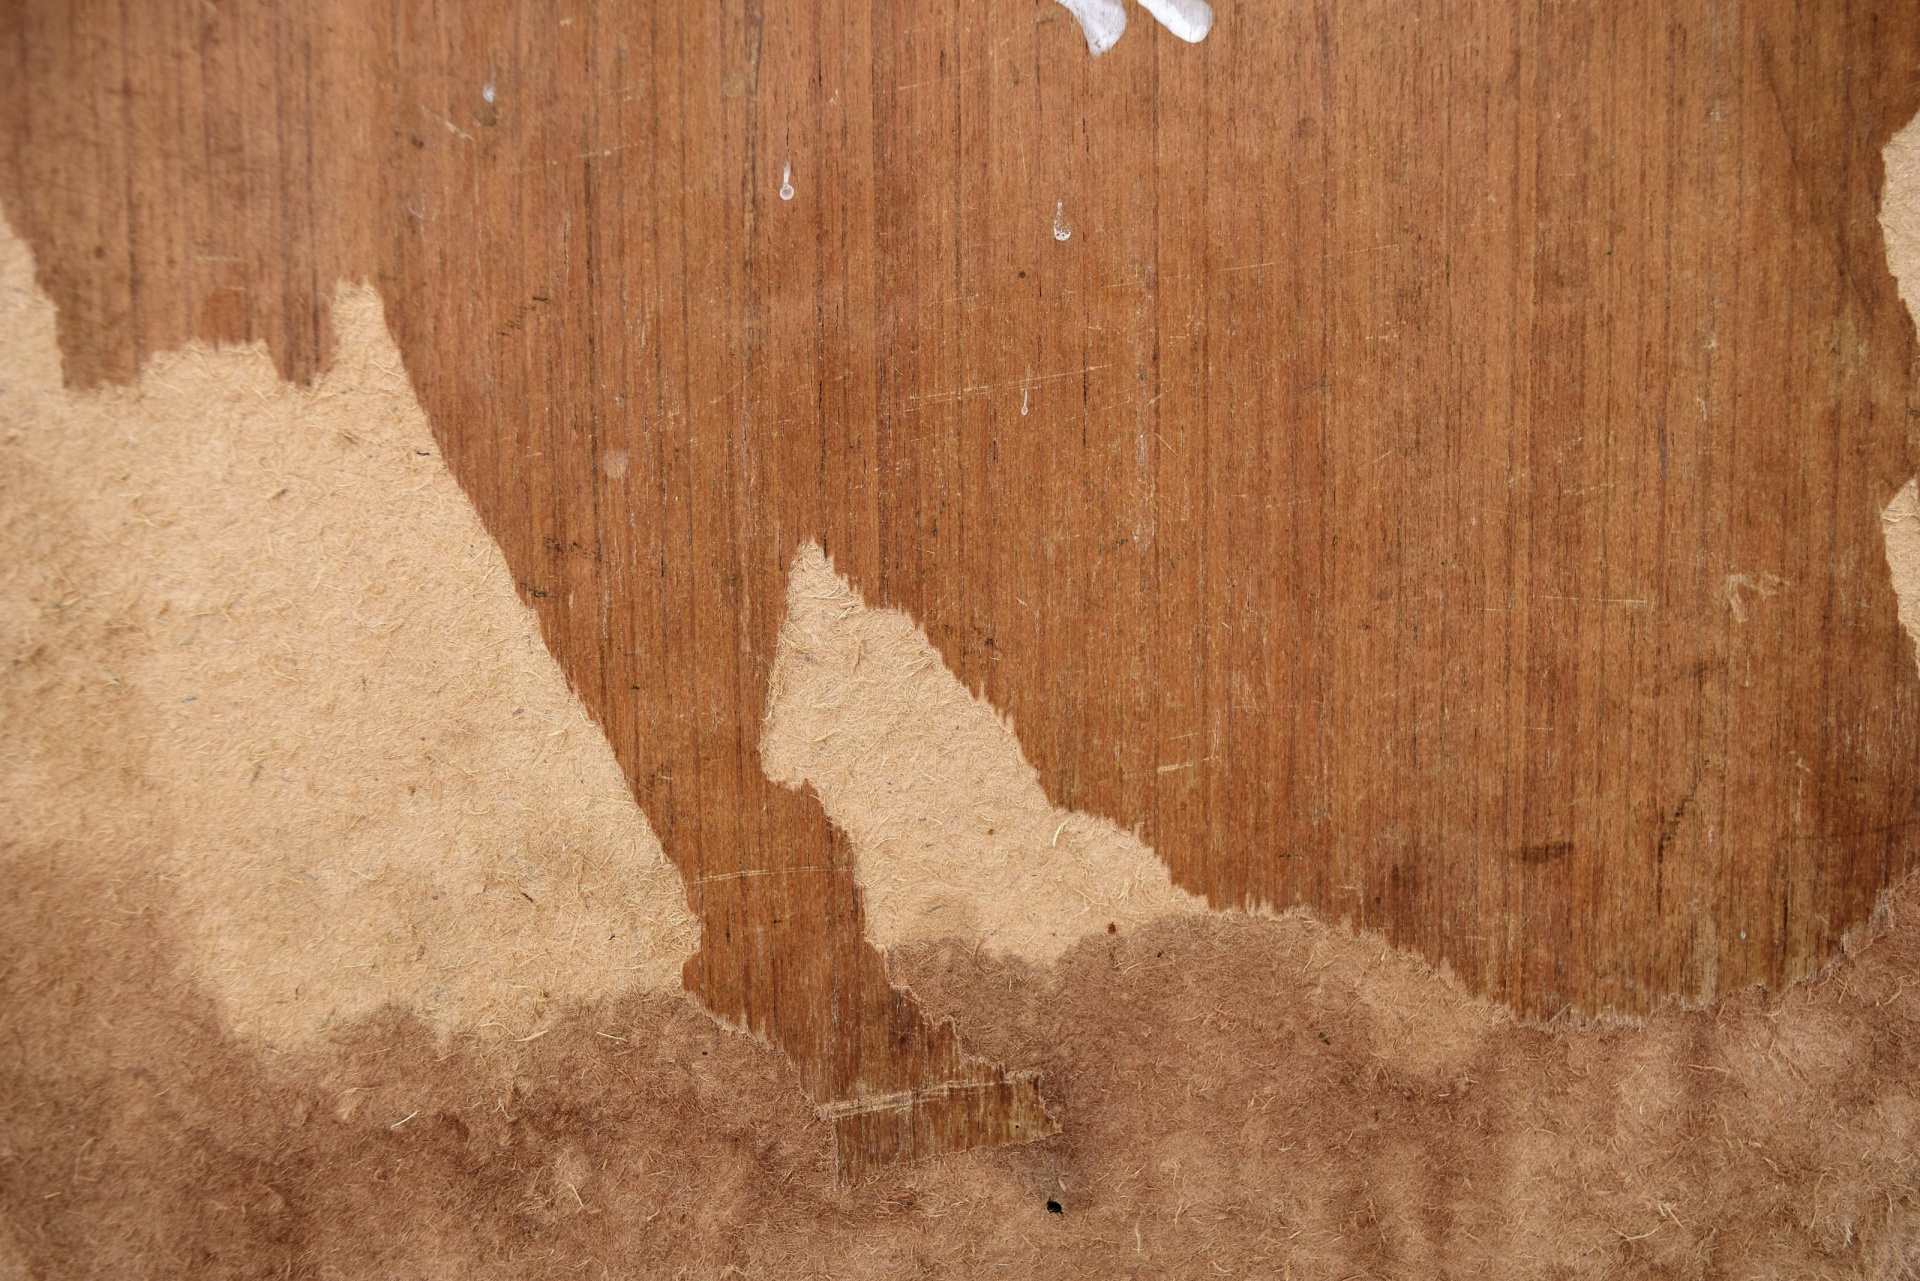 plywood decay 1